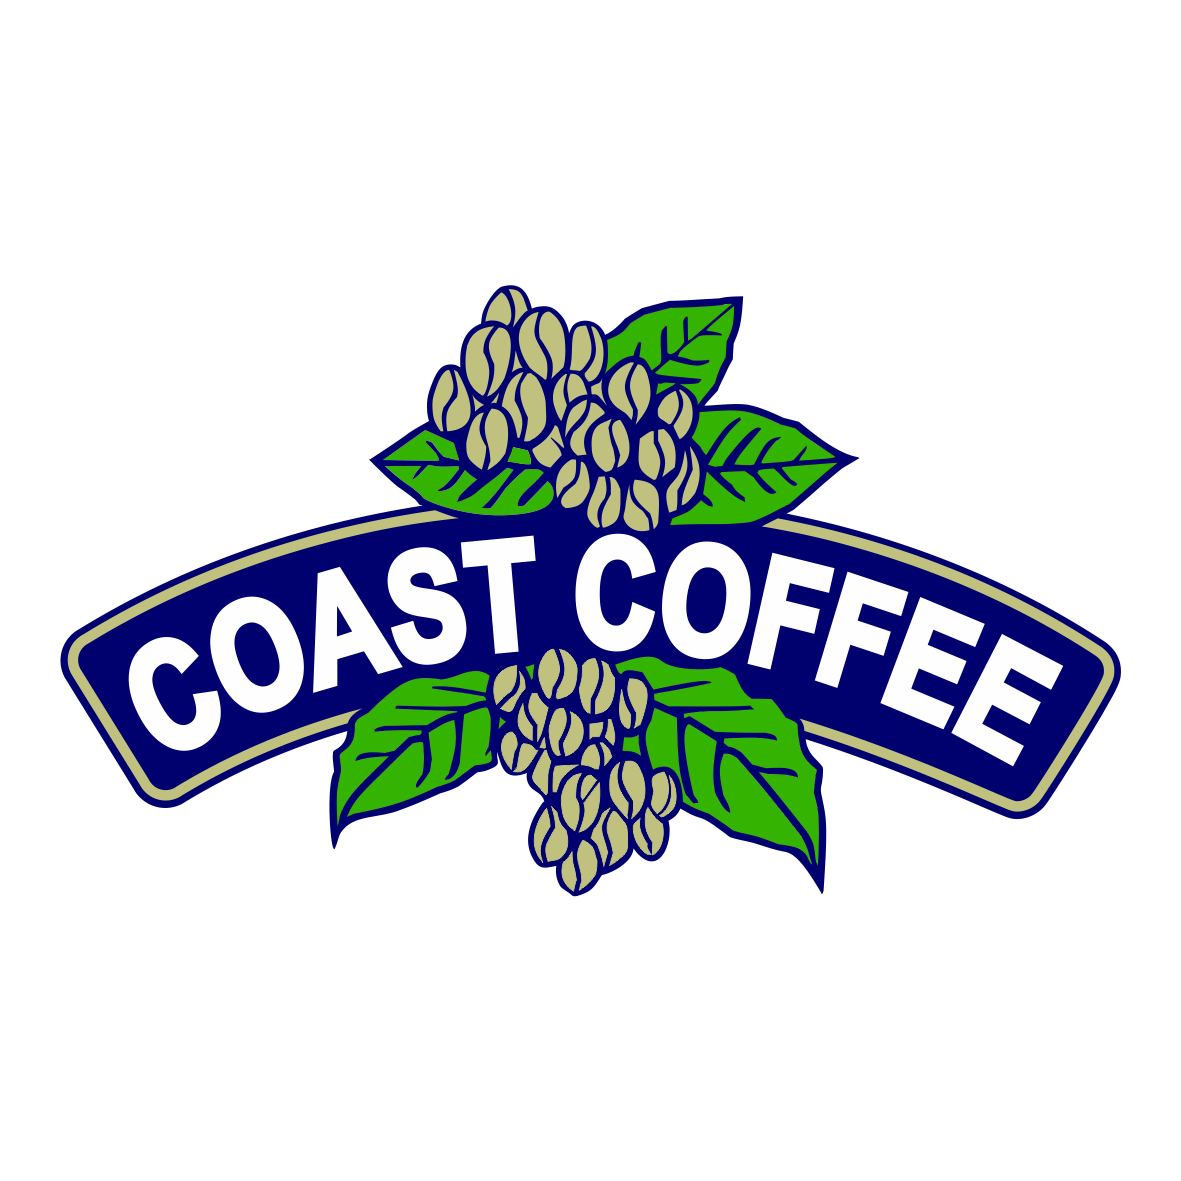 Coast Coffee